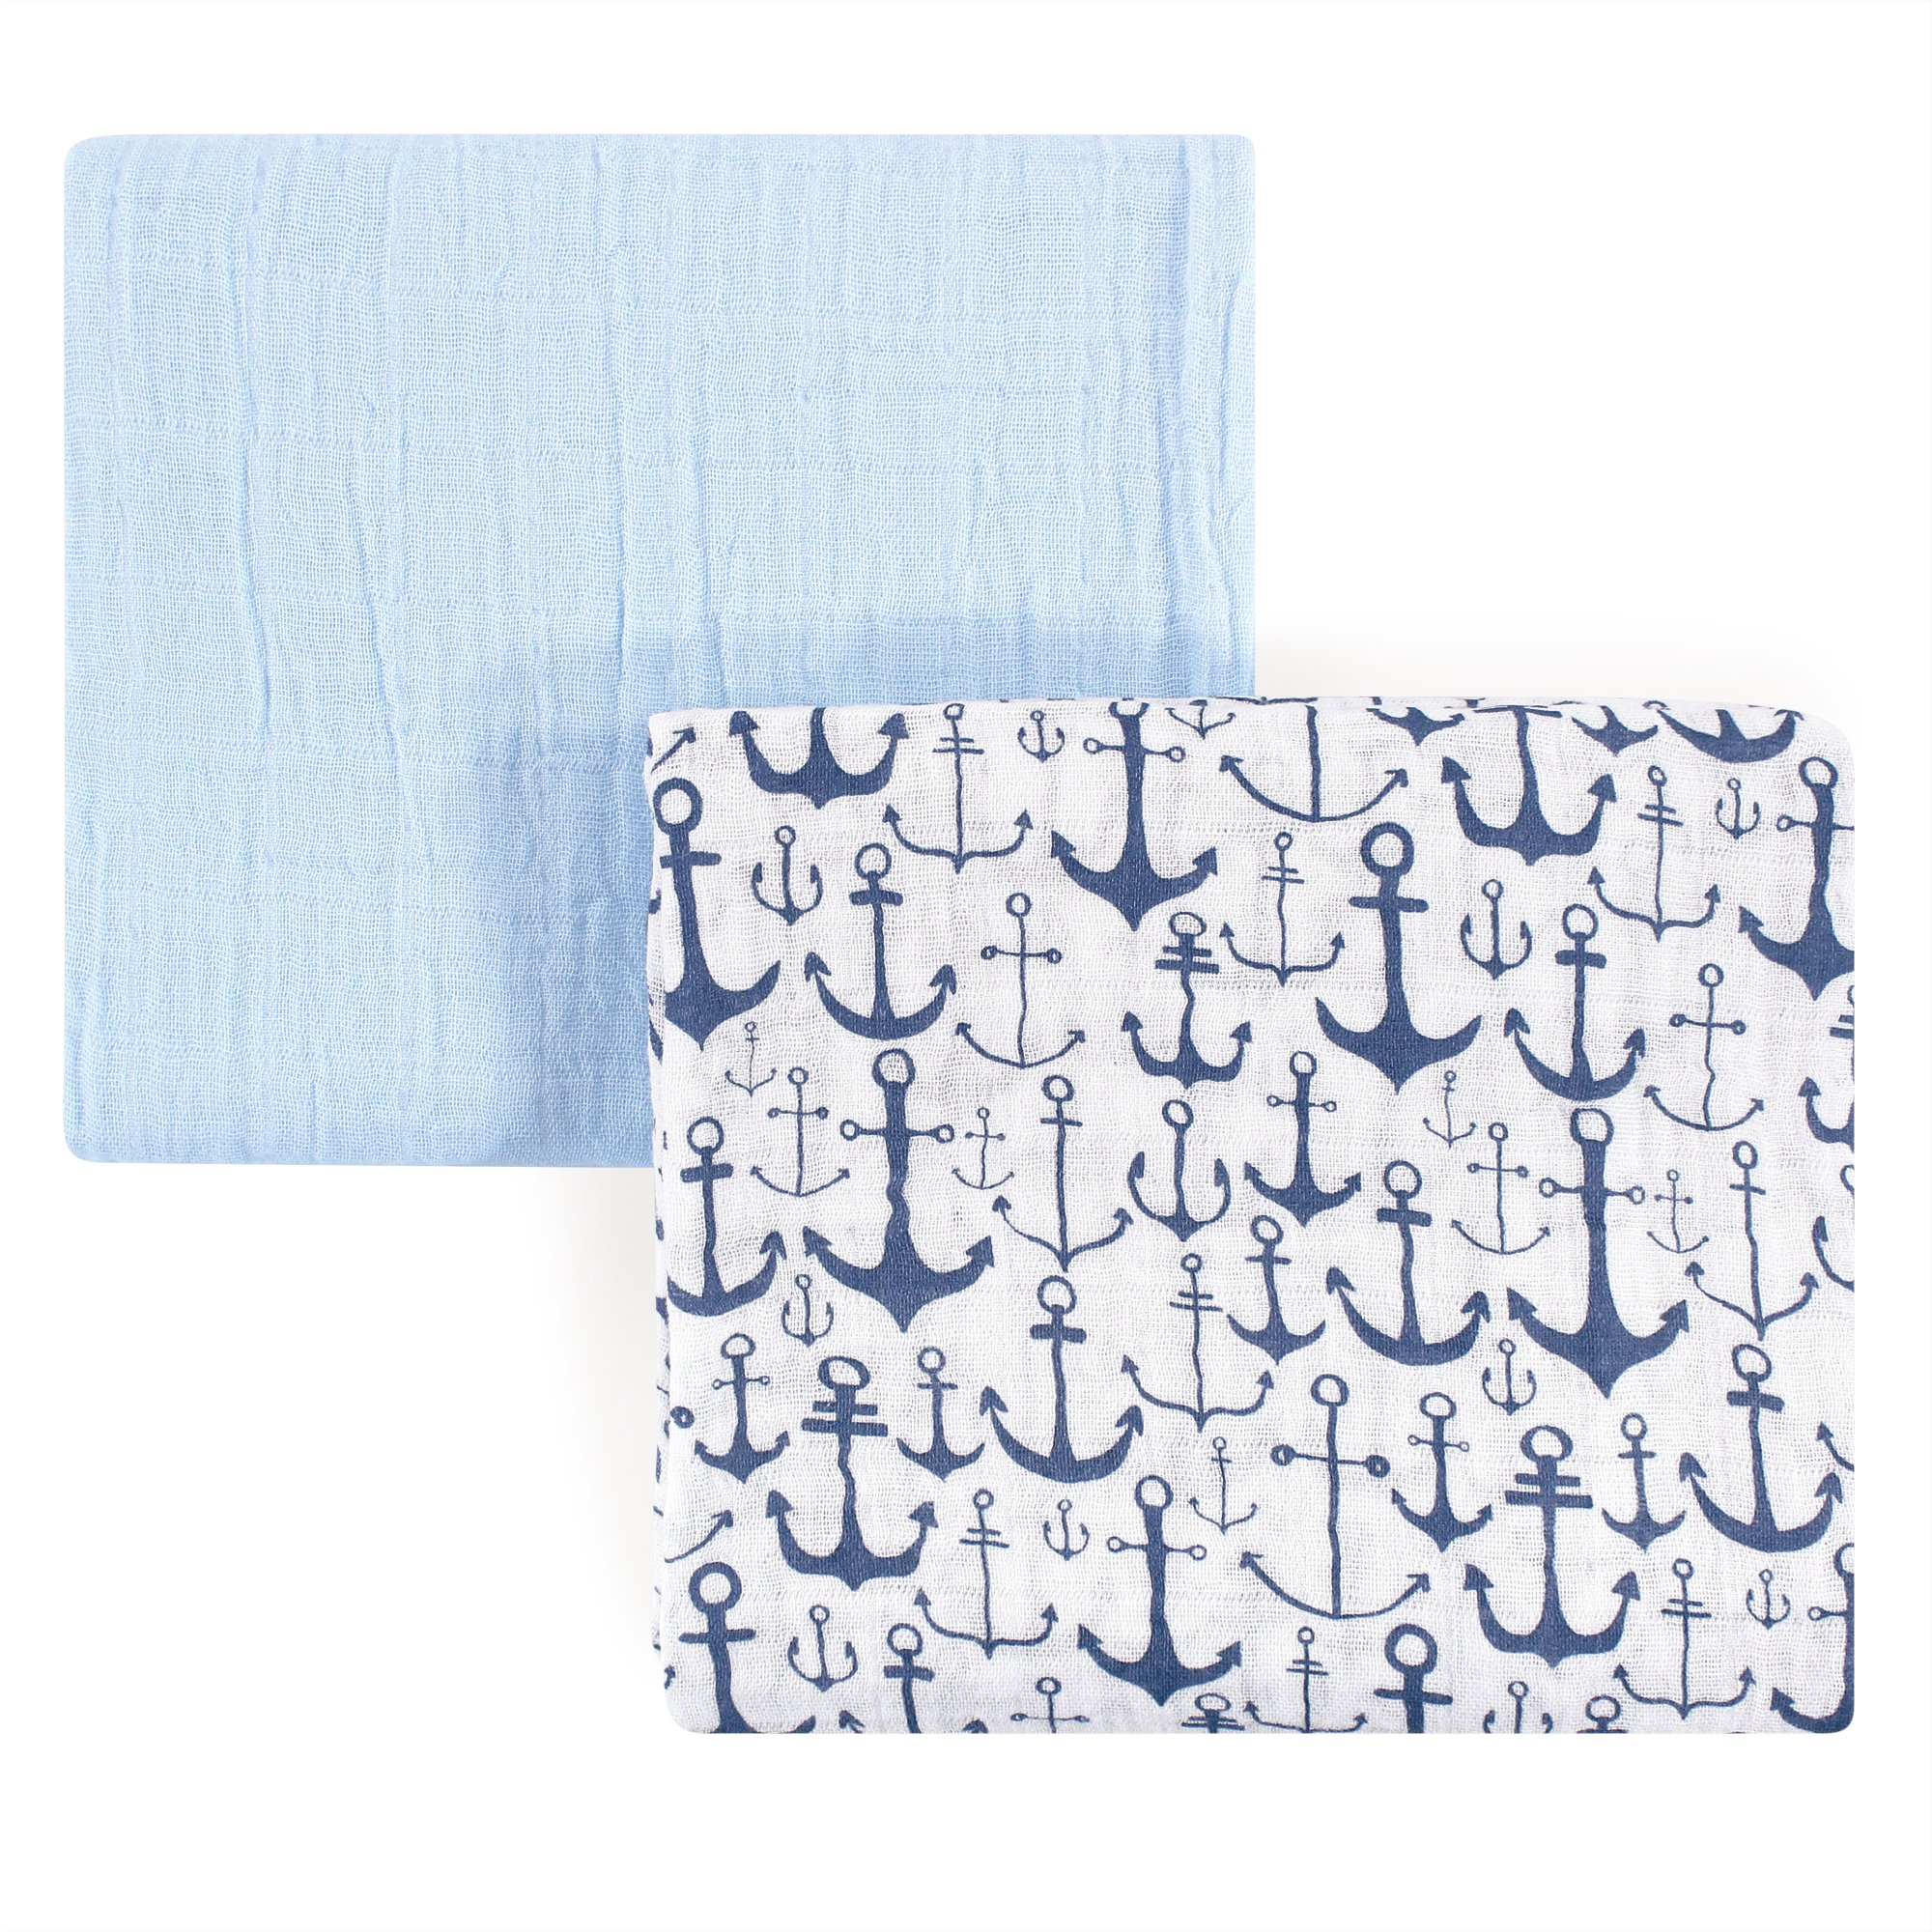 Yoga Sprout Unisex Baby Cotton Muslin Swaddle Blankets, Blue Anchor, One Size